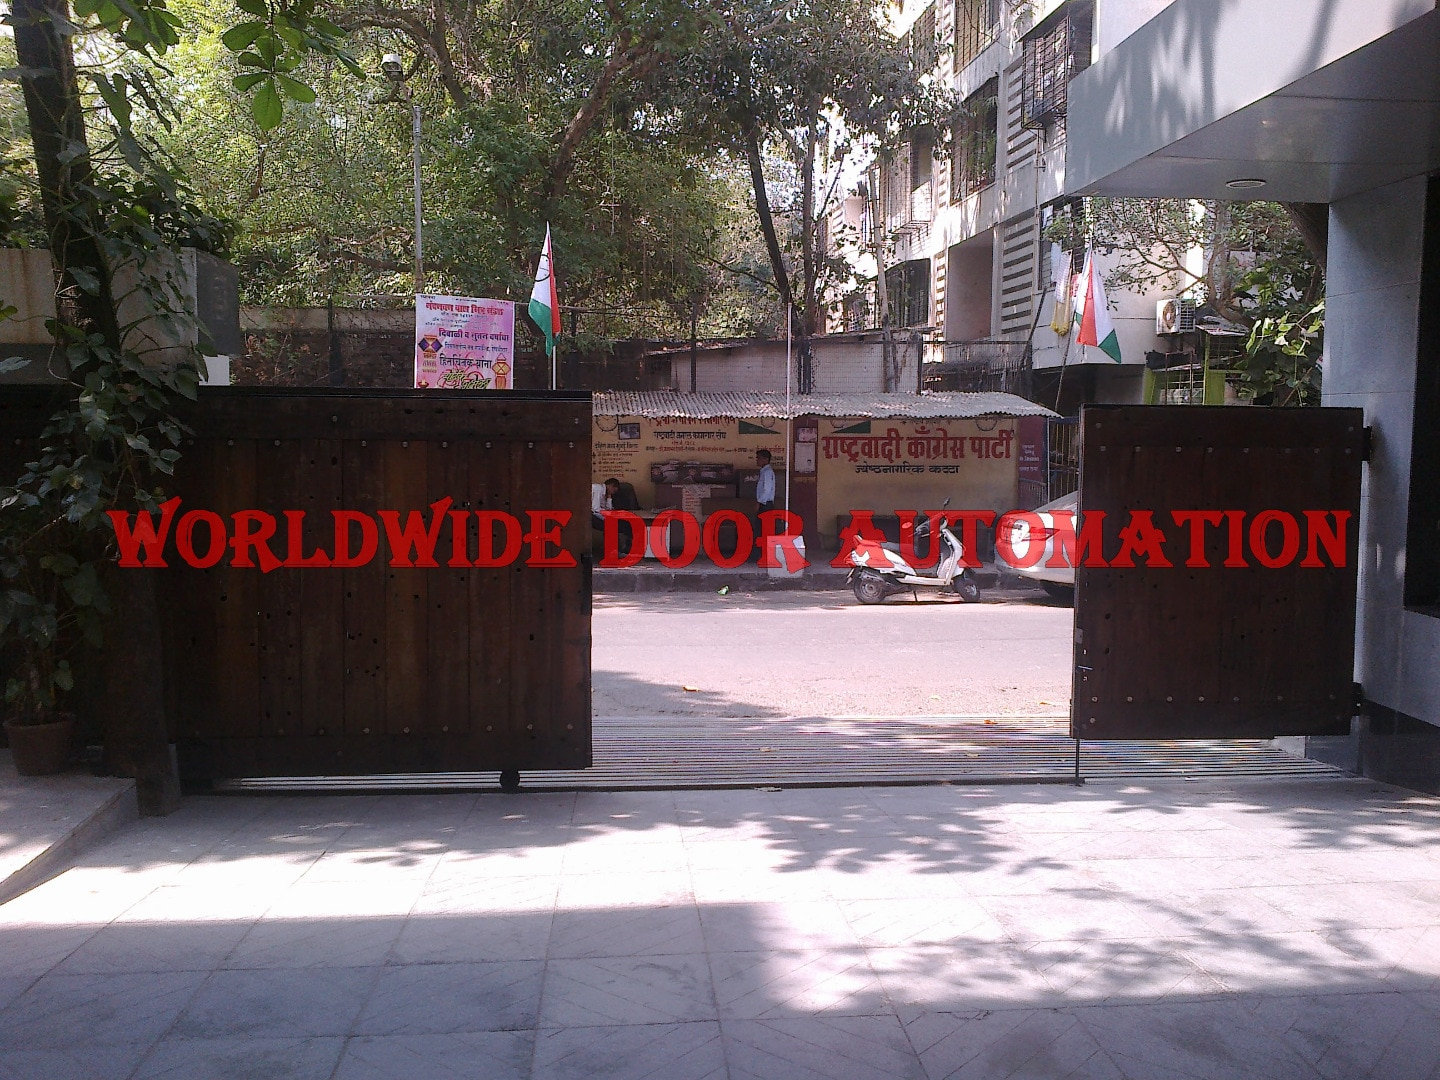 World wide Door Automation